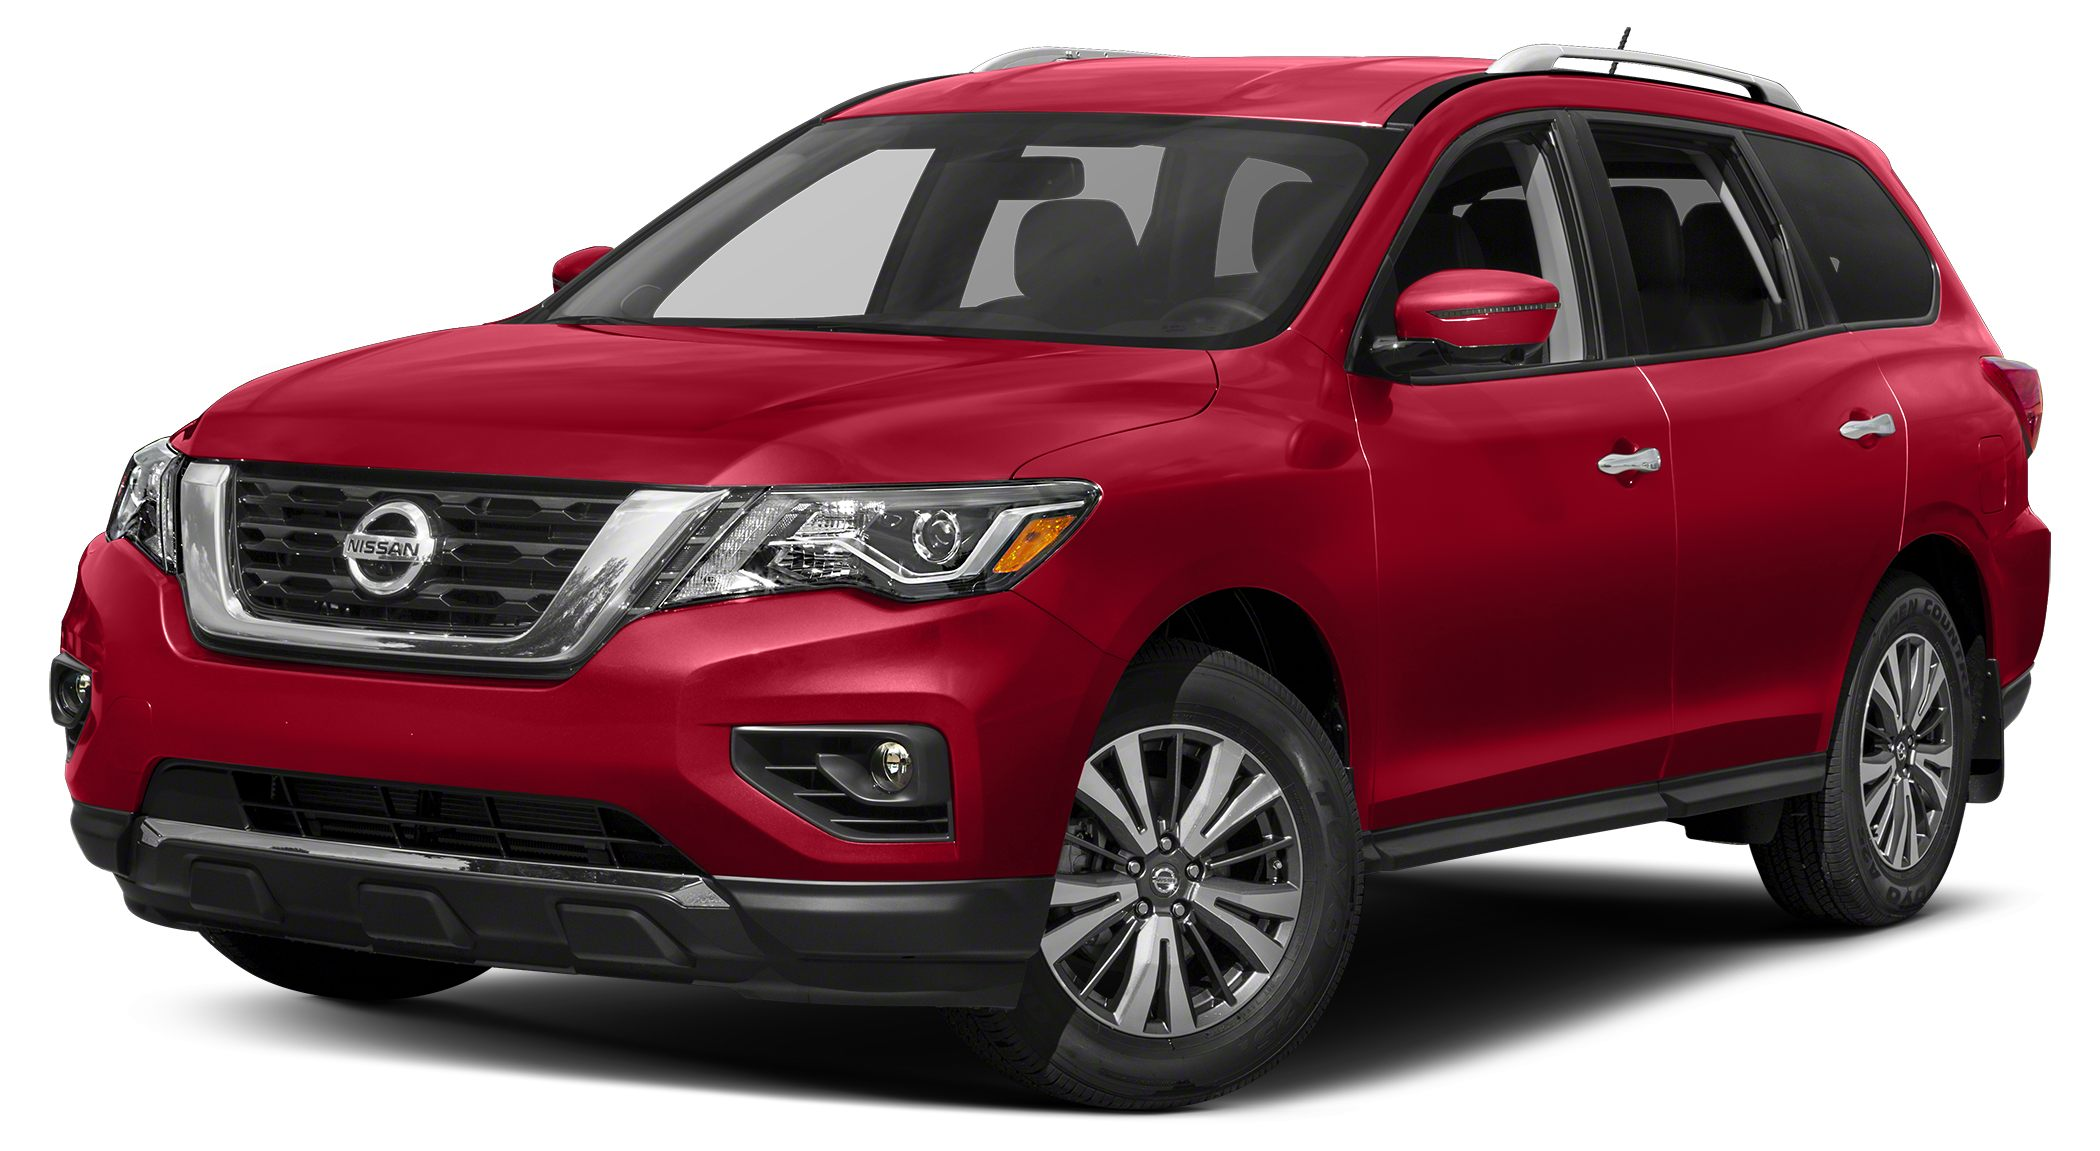 2017 Nissan Pathfinder SV New Arrival This 2017 Nissan Pathfinder SV will sell fast This Pathfin